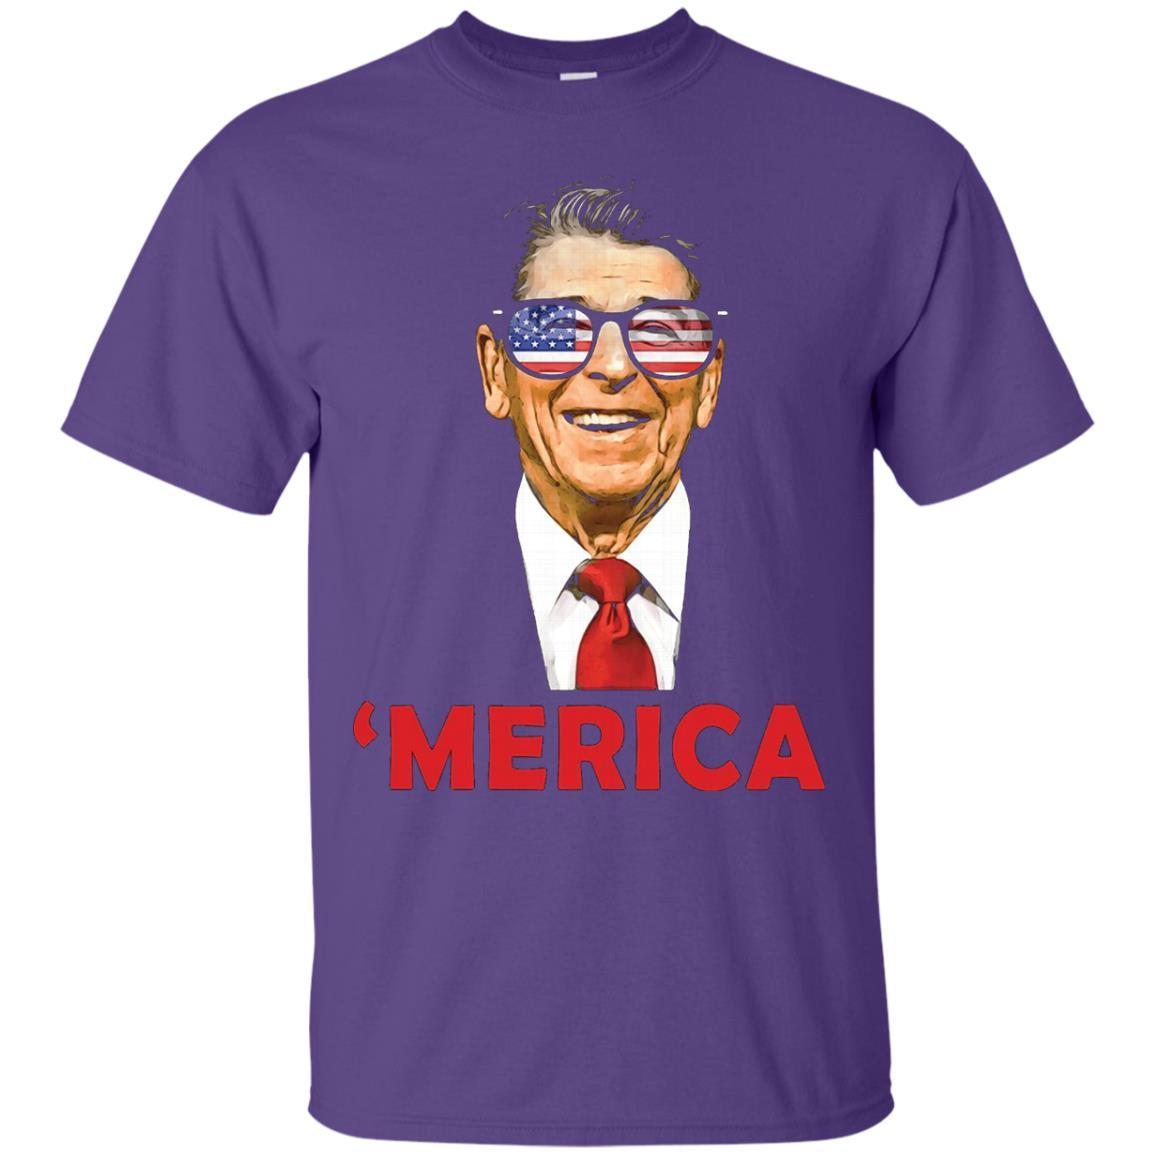 'Merica Ronald Reagan Patriotic Sunglasses USA Funny T-Shirt